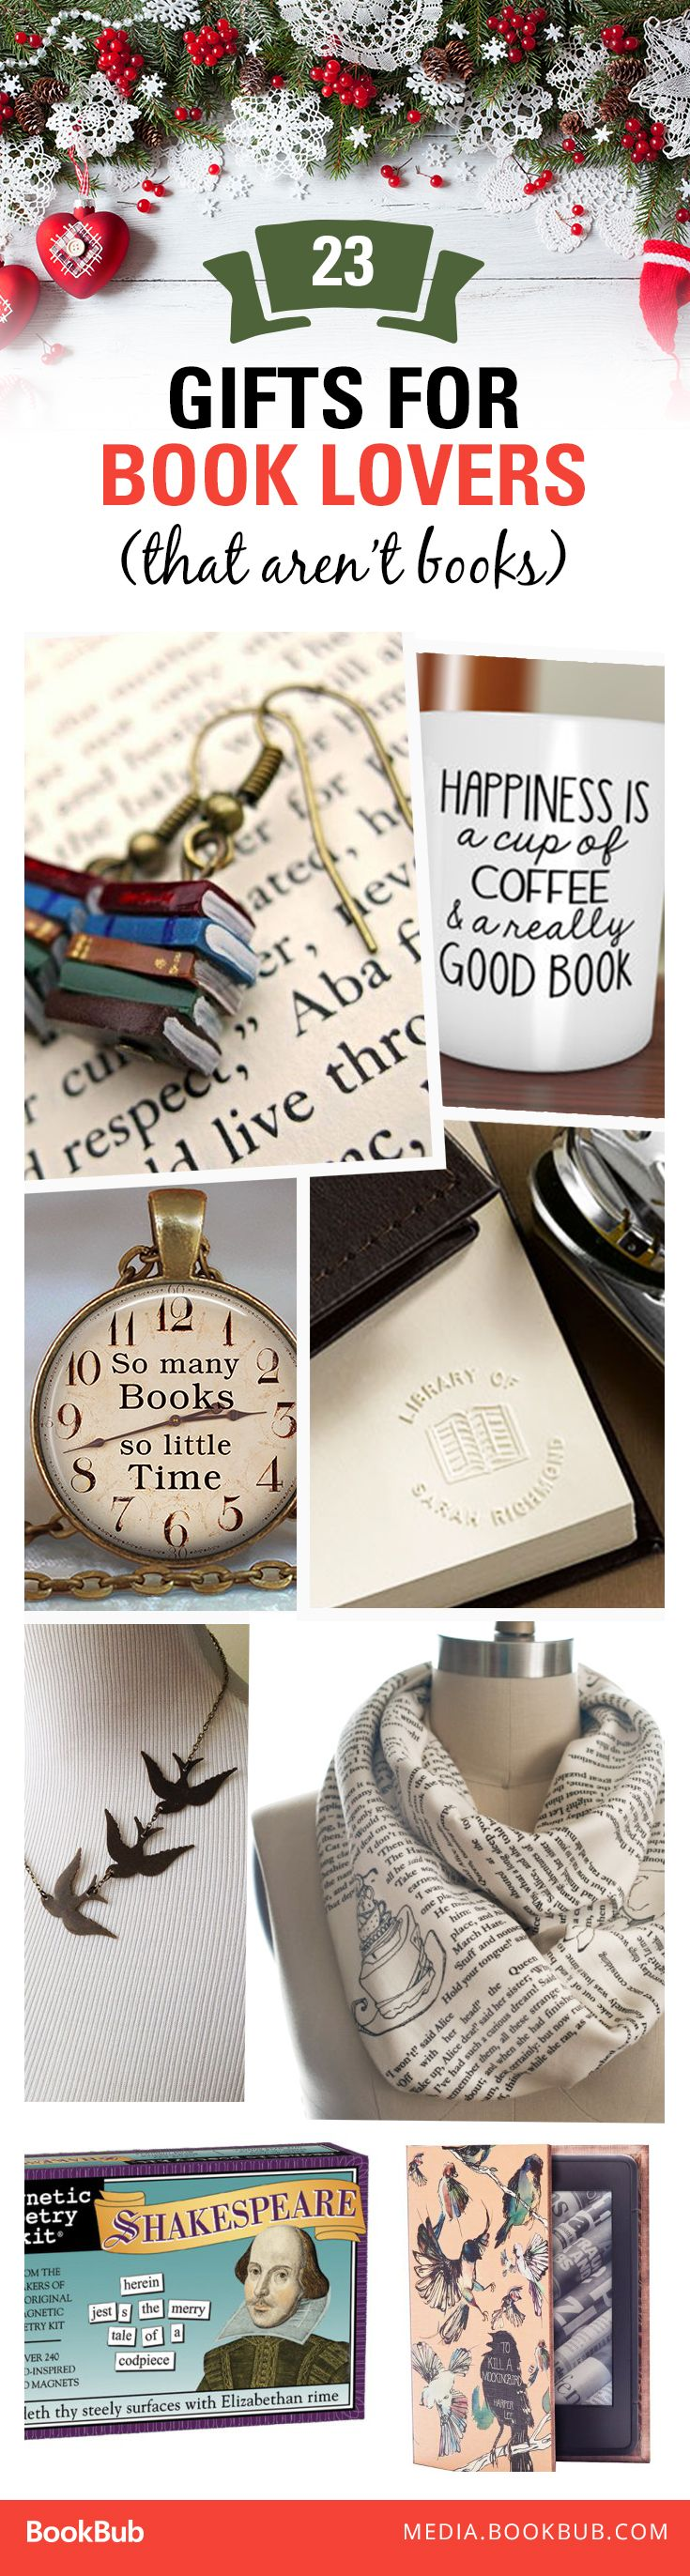 23 Christmas present ideas ideas for the book lover in your life!